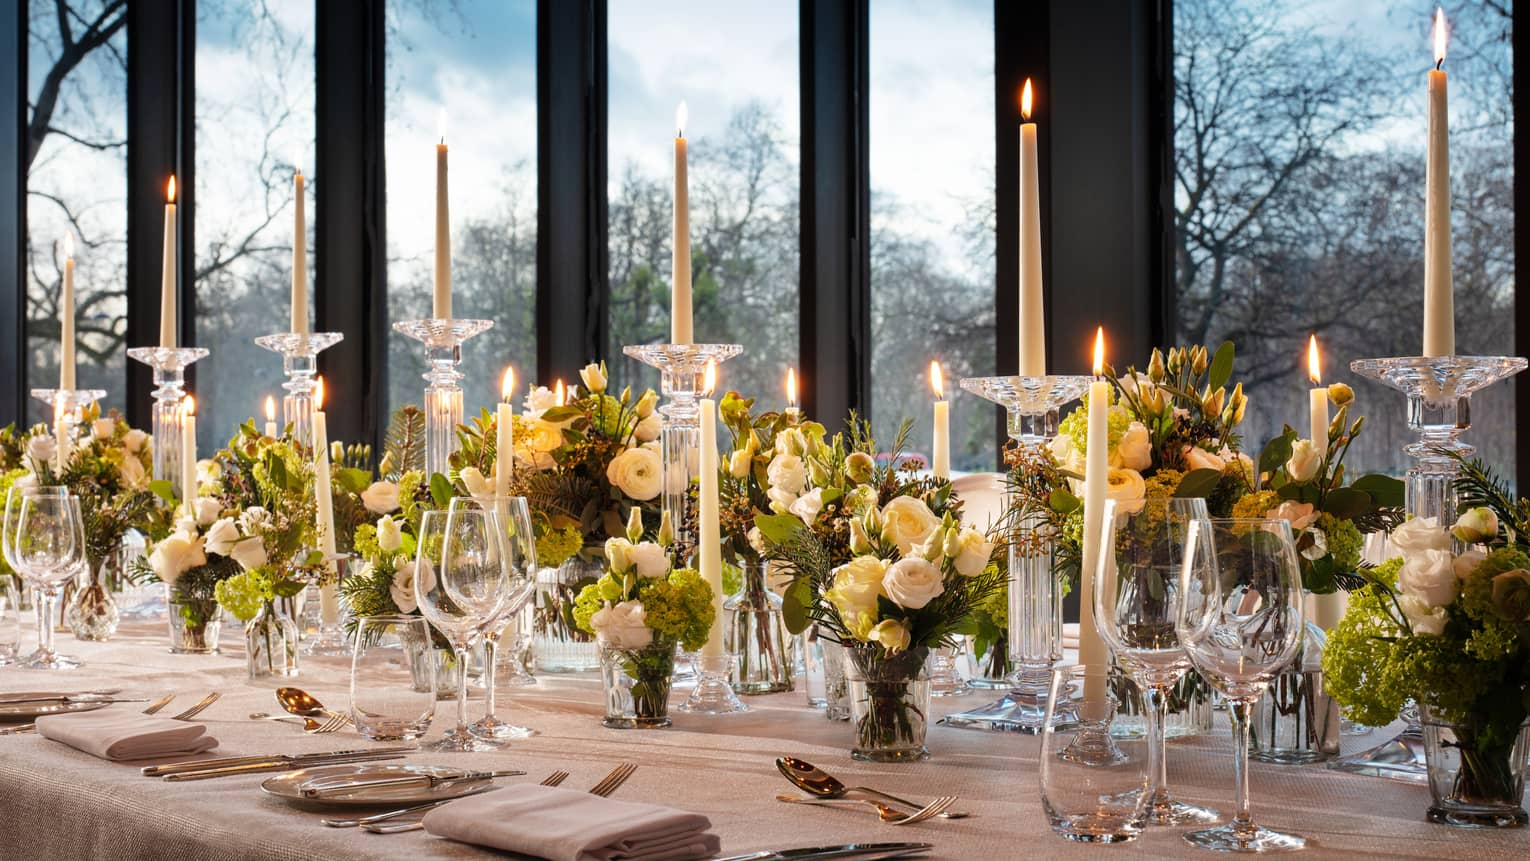 Closeup shot of meeting room table set with tall tapered candles and green floral arrangements against a window backdrop